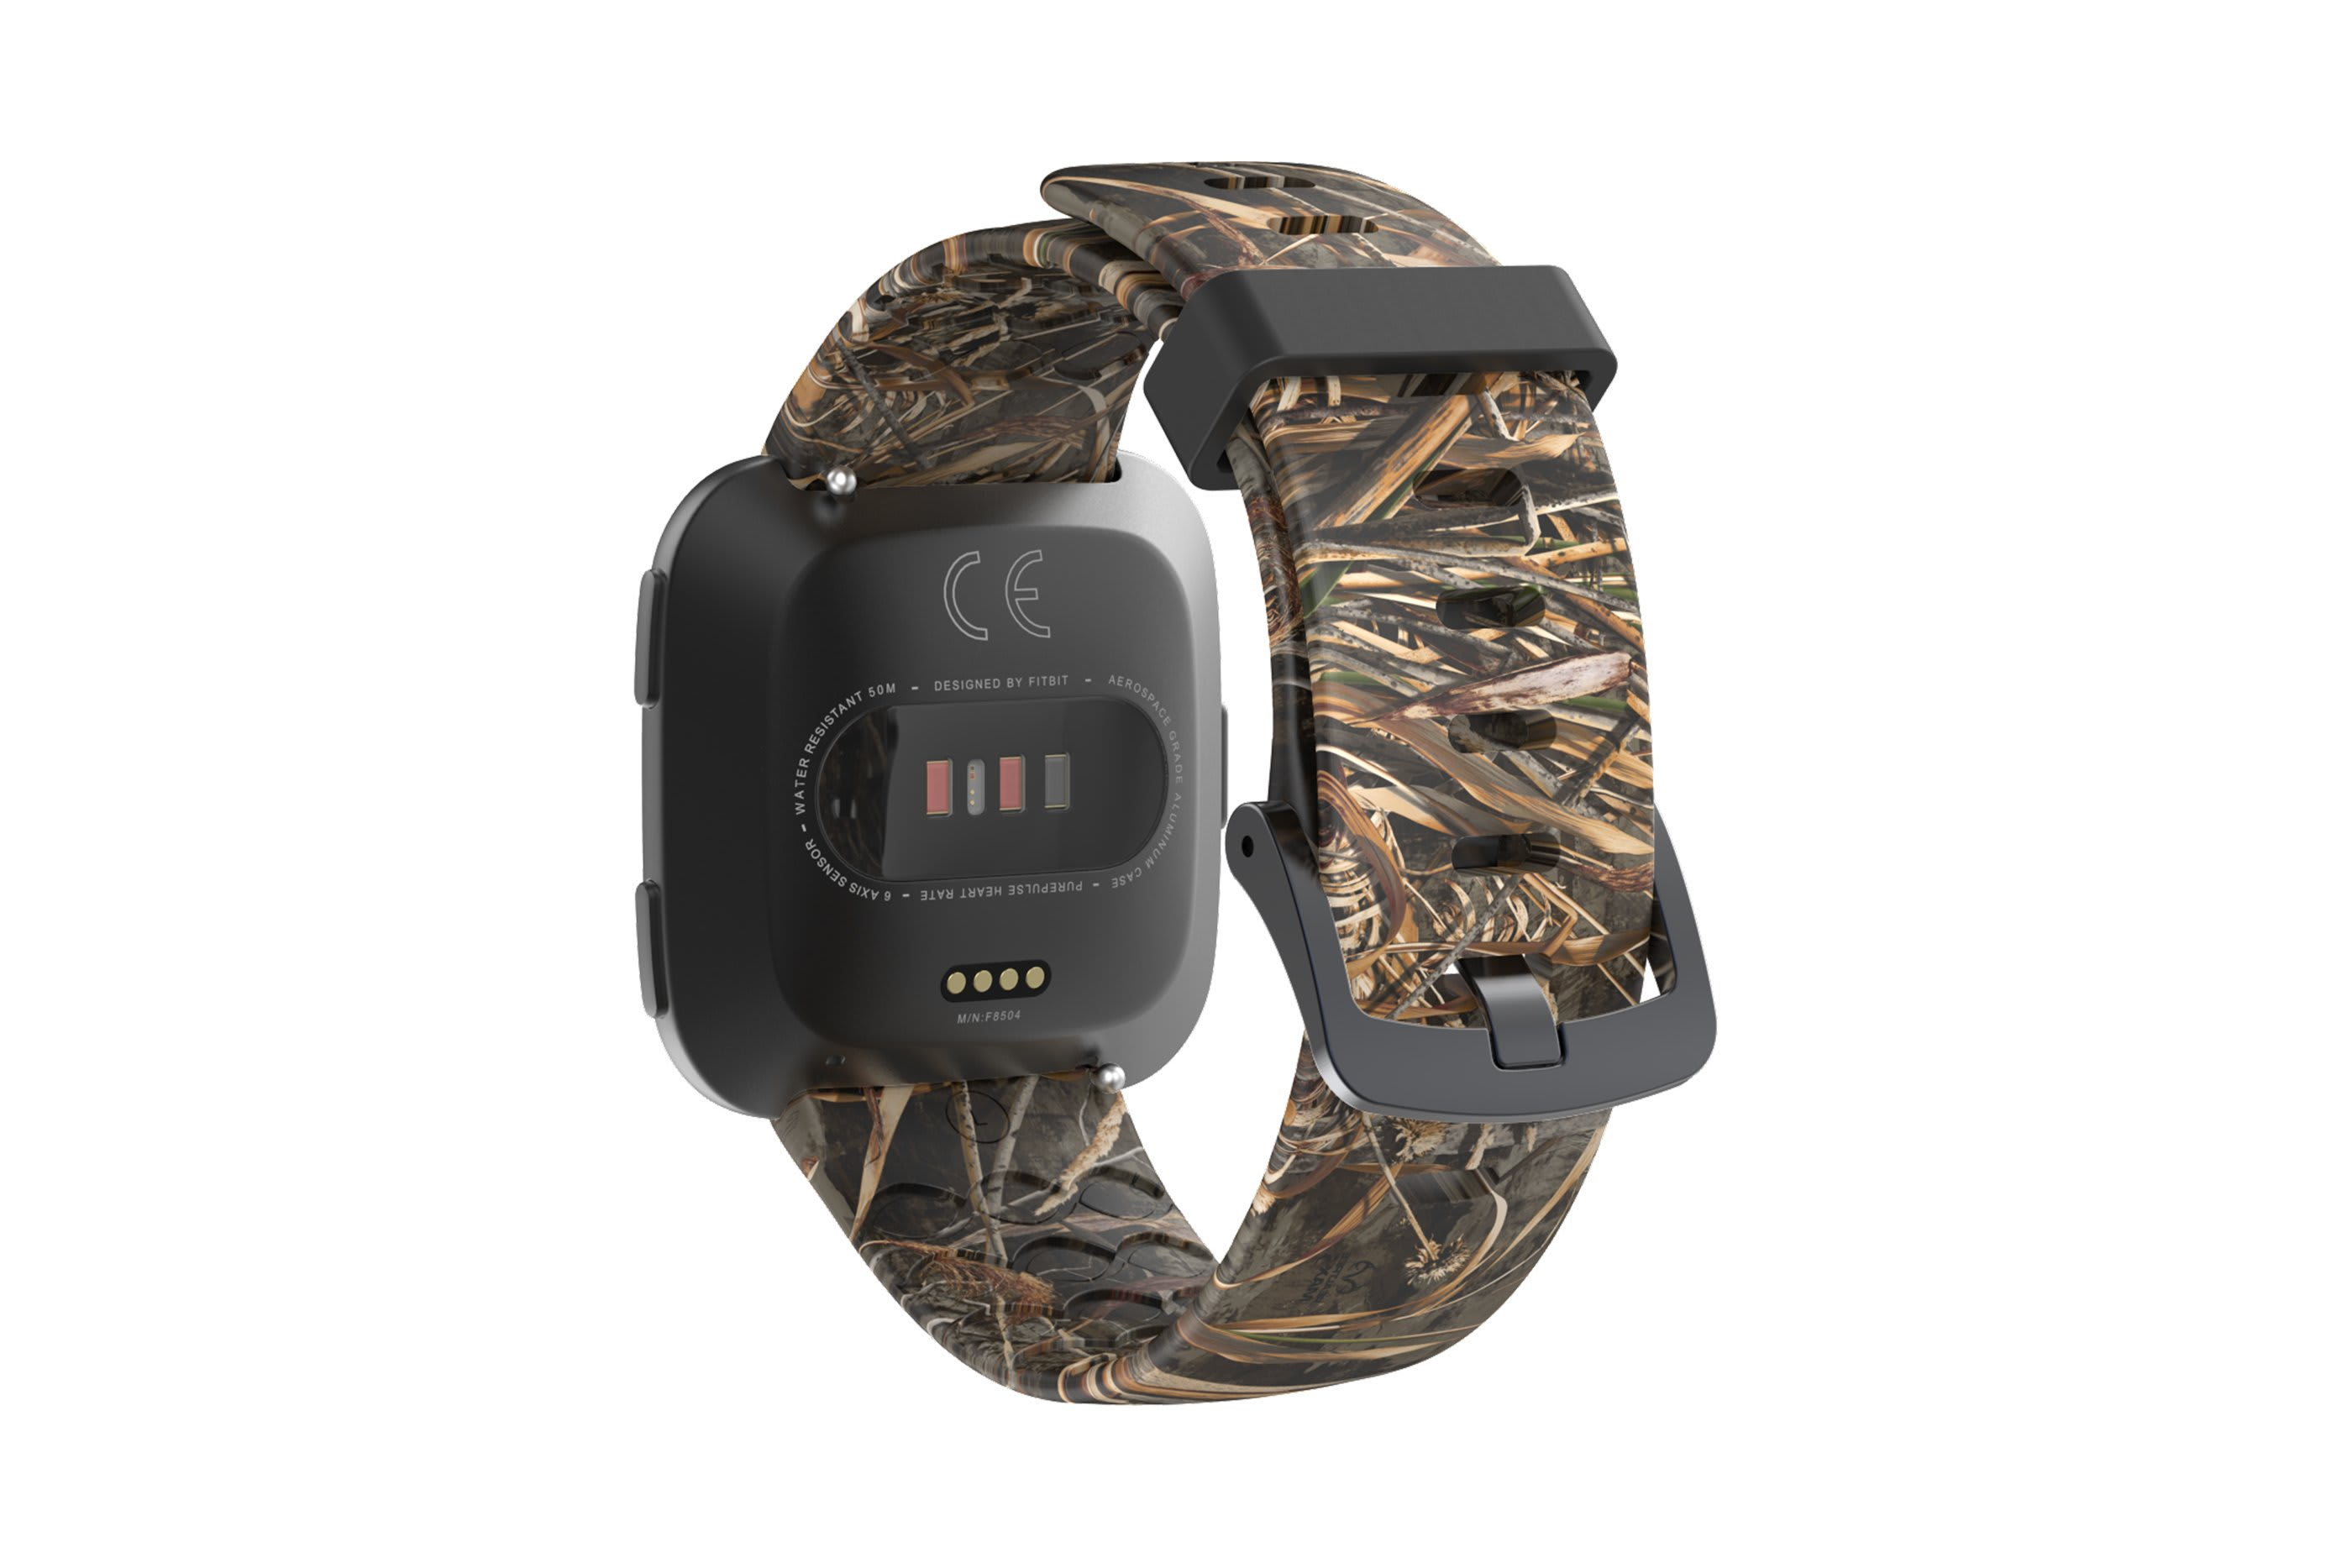 Realtree Max 5 fitbit versa watch band with gray hardware viewed from top down